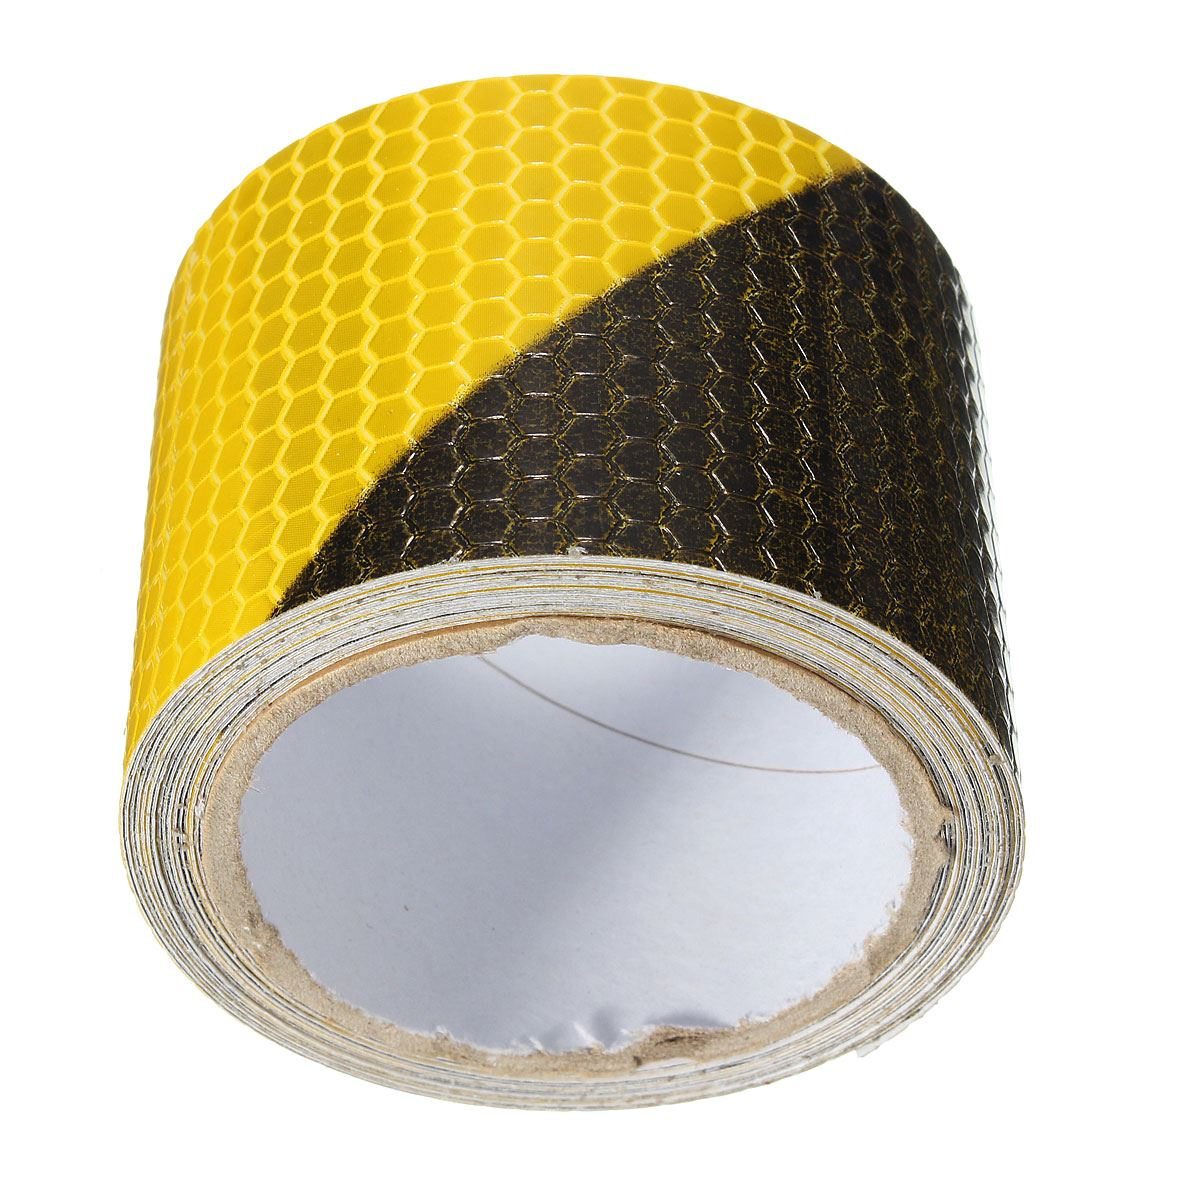 Black Yellow Reflective Safety Warning Conspicuity Tape Film Sticker 300cm X 5cm Workplace Safety Supplies Warning Tape